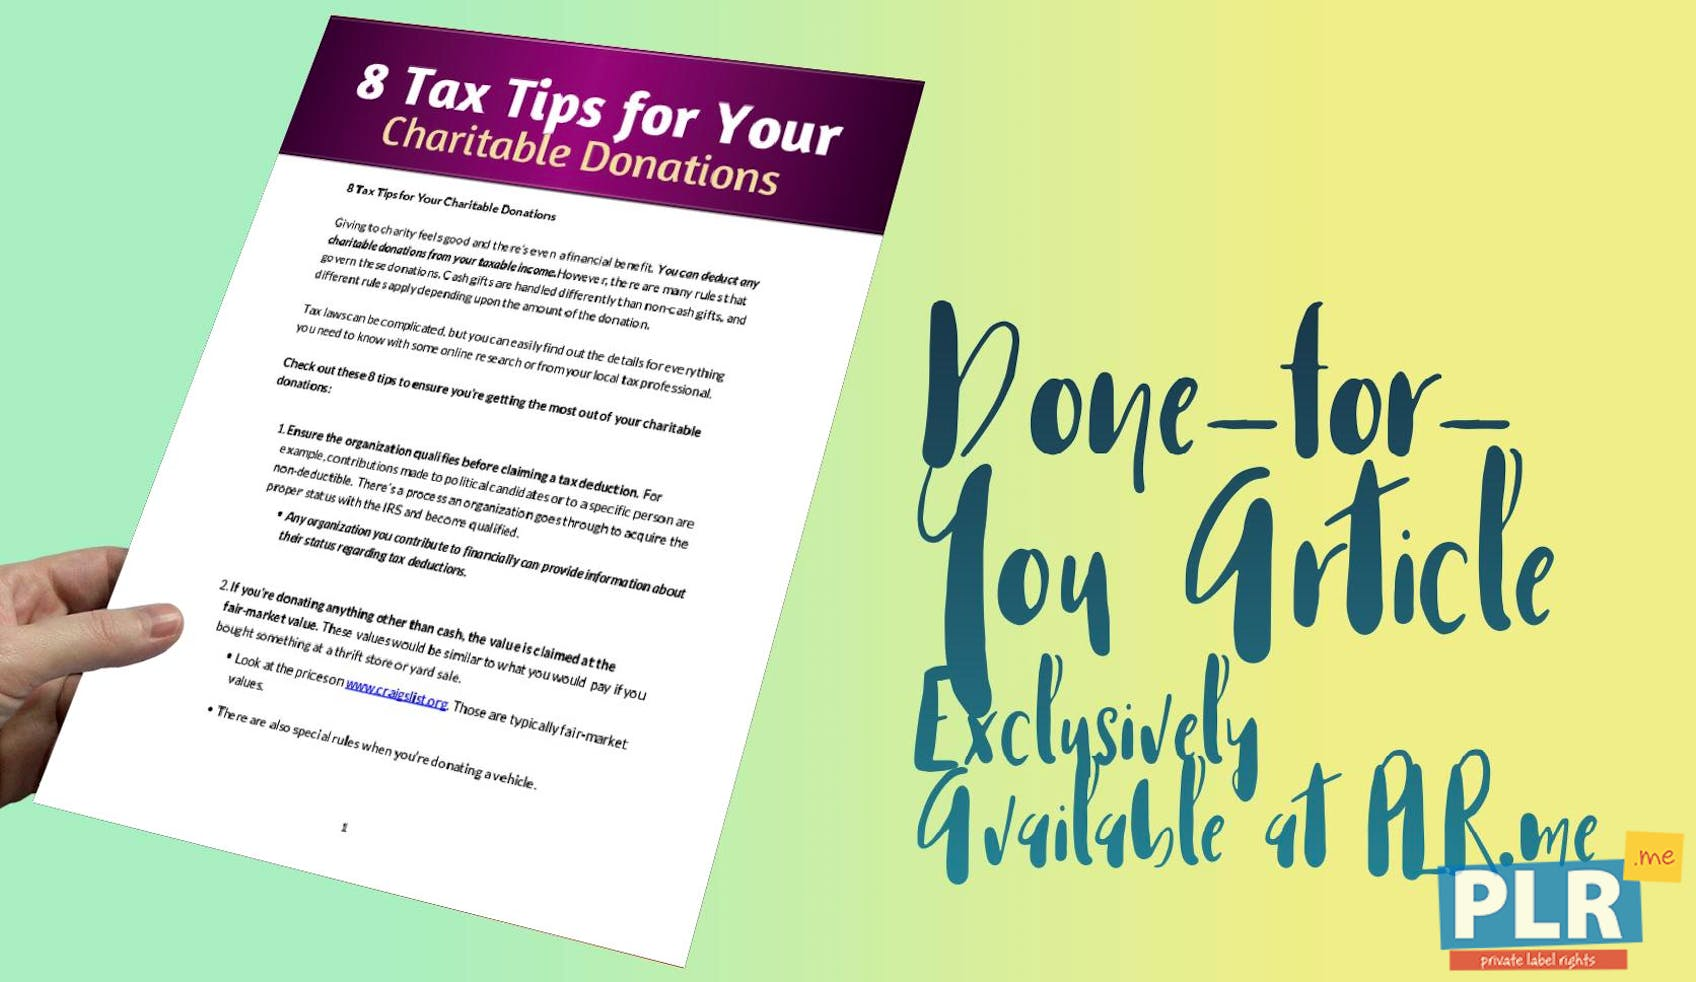 8 Tax Tips For Your Charitable Donations